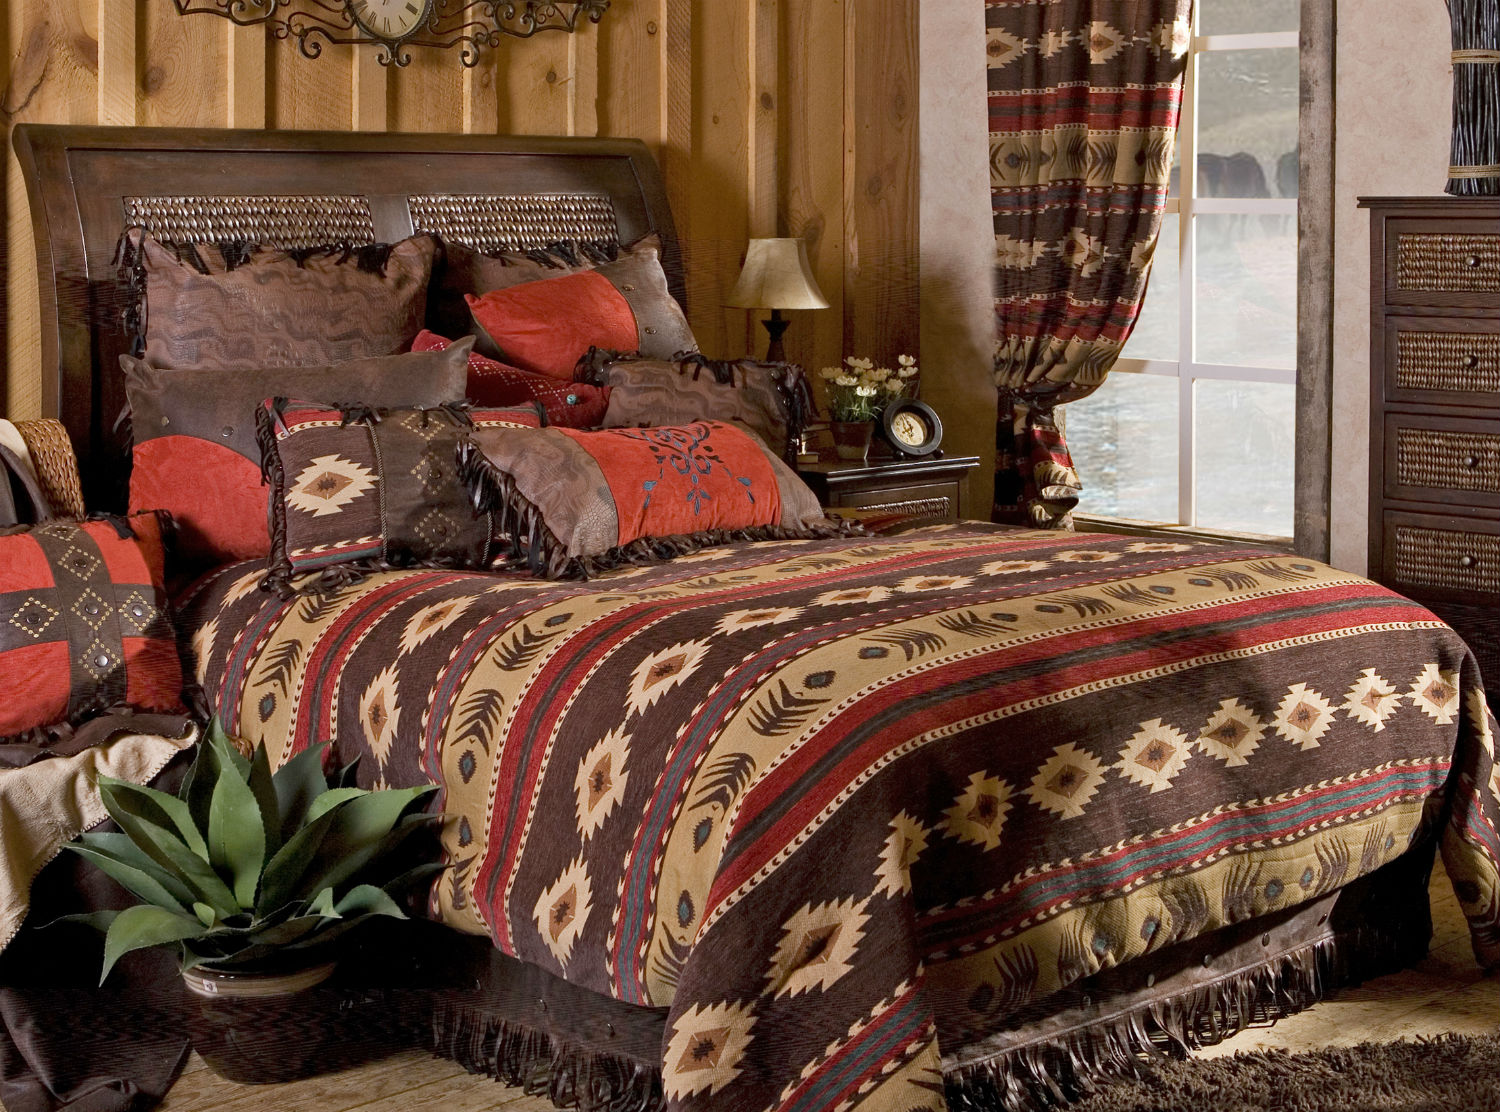 Cimarron By Carstens Lodge Bedding By Carstens Lodge